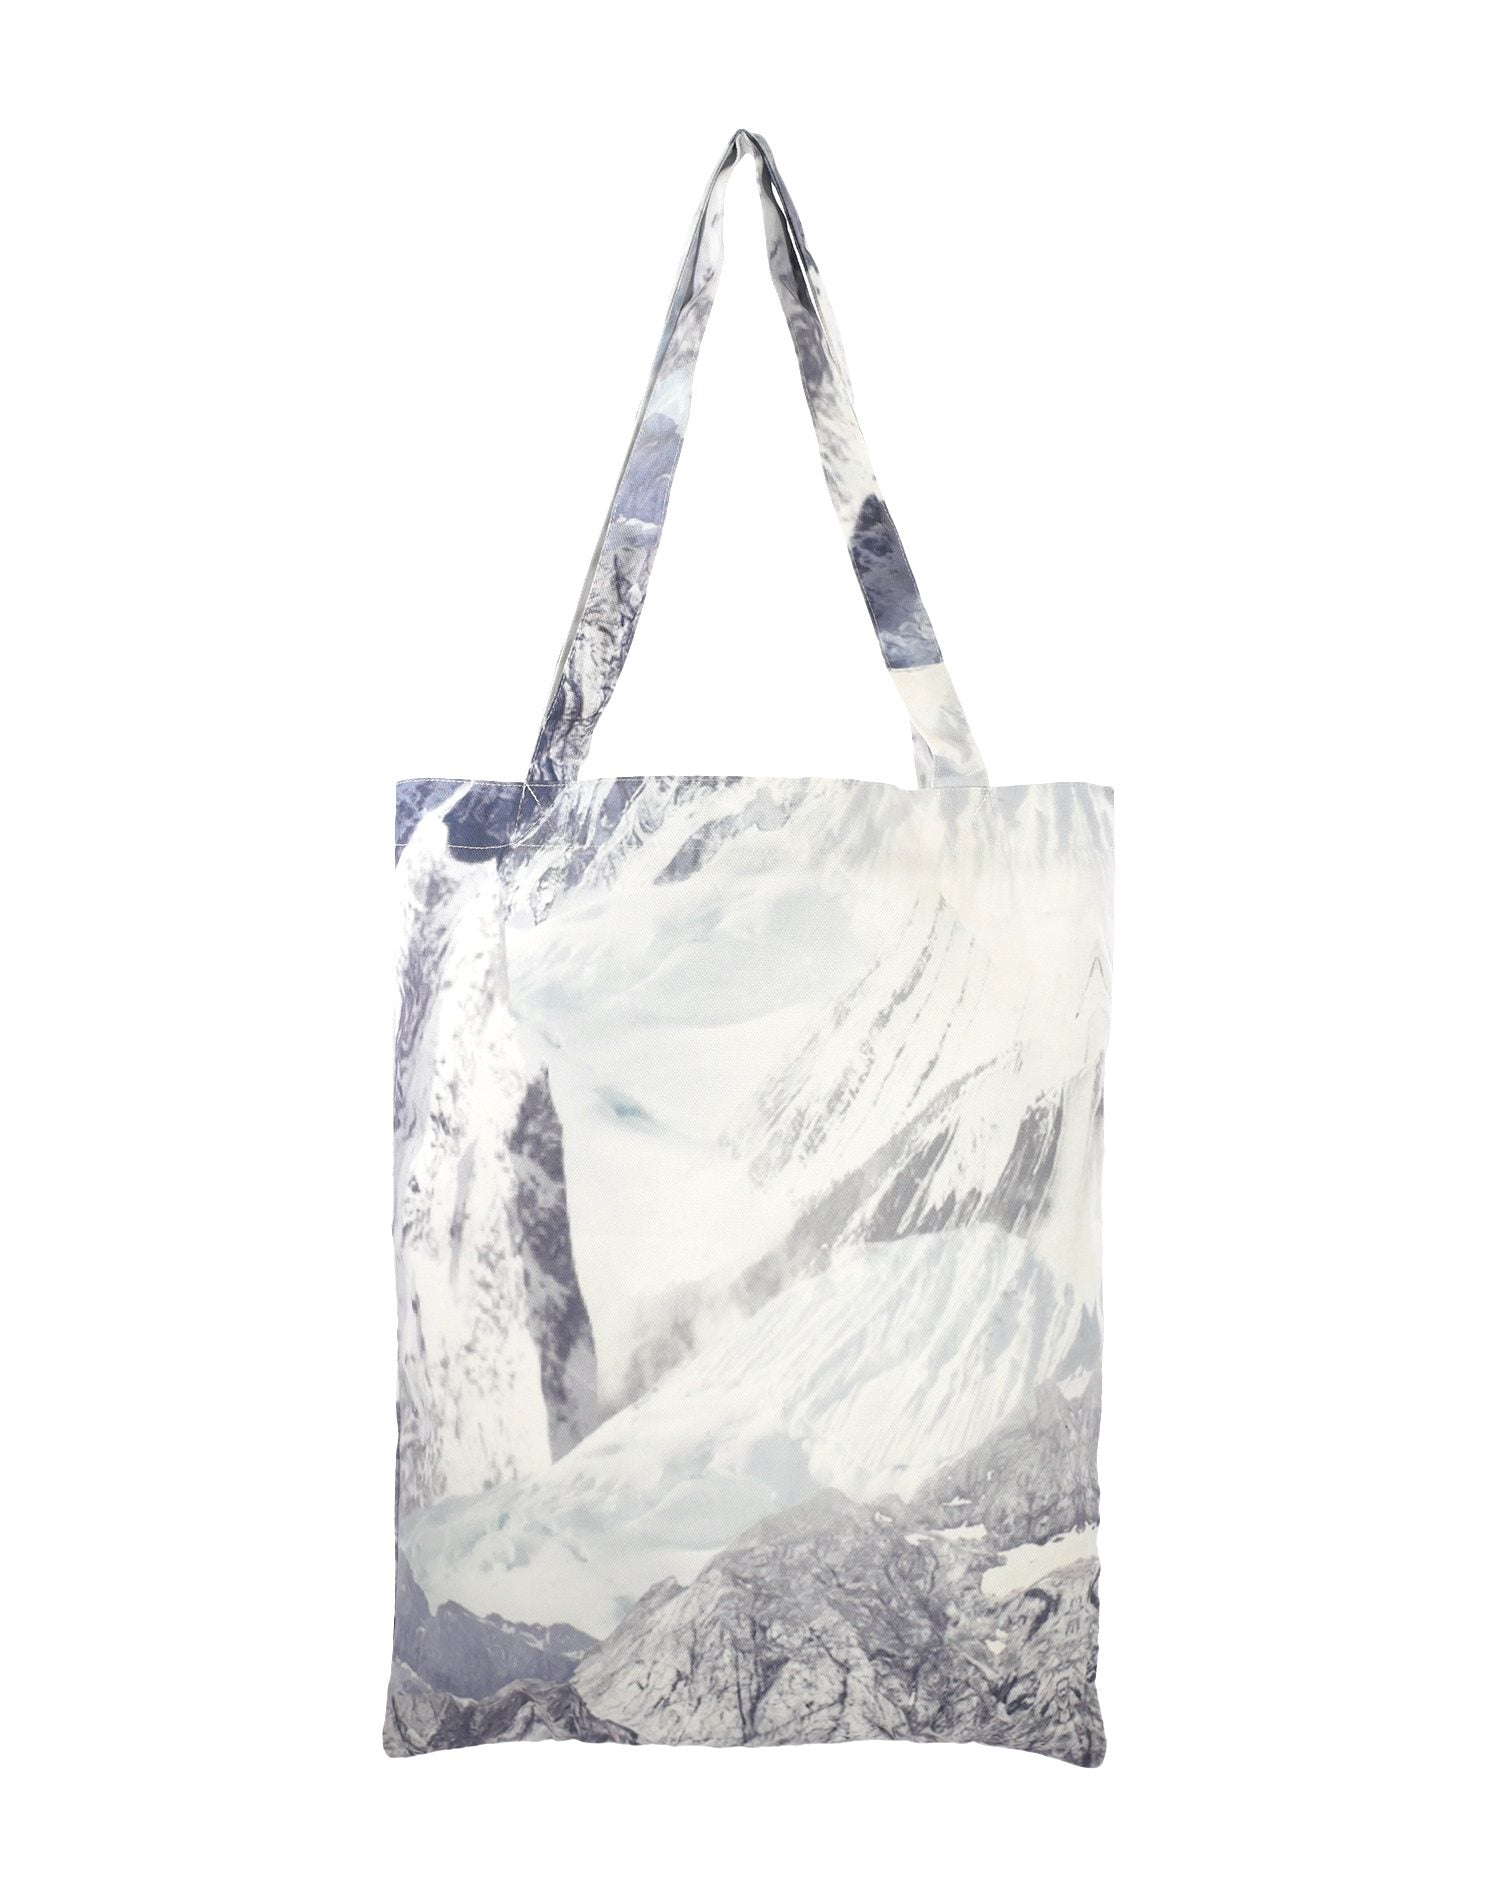 Grey Mountain Canvas Tote Bag.灰山系帆布側背袋